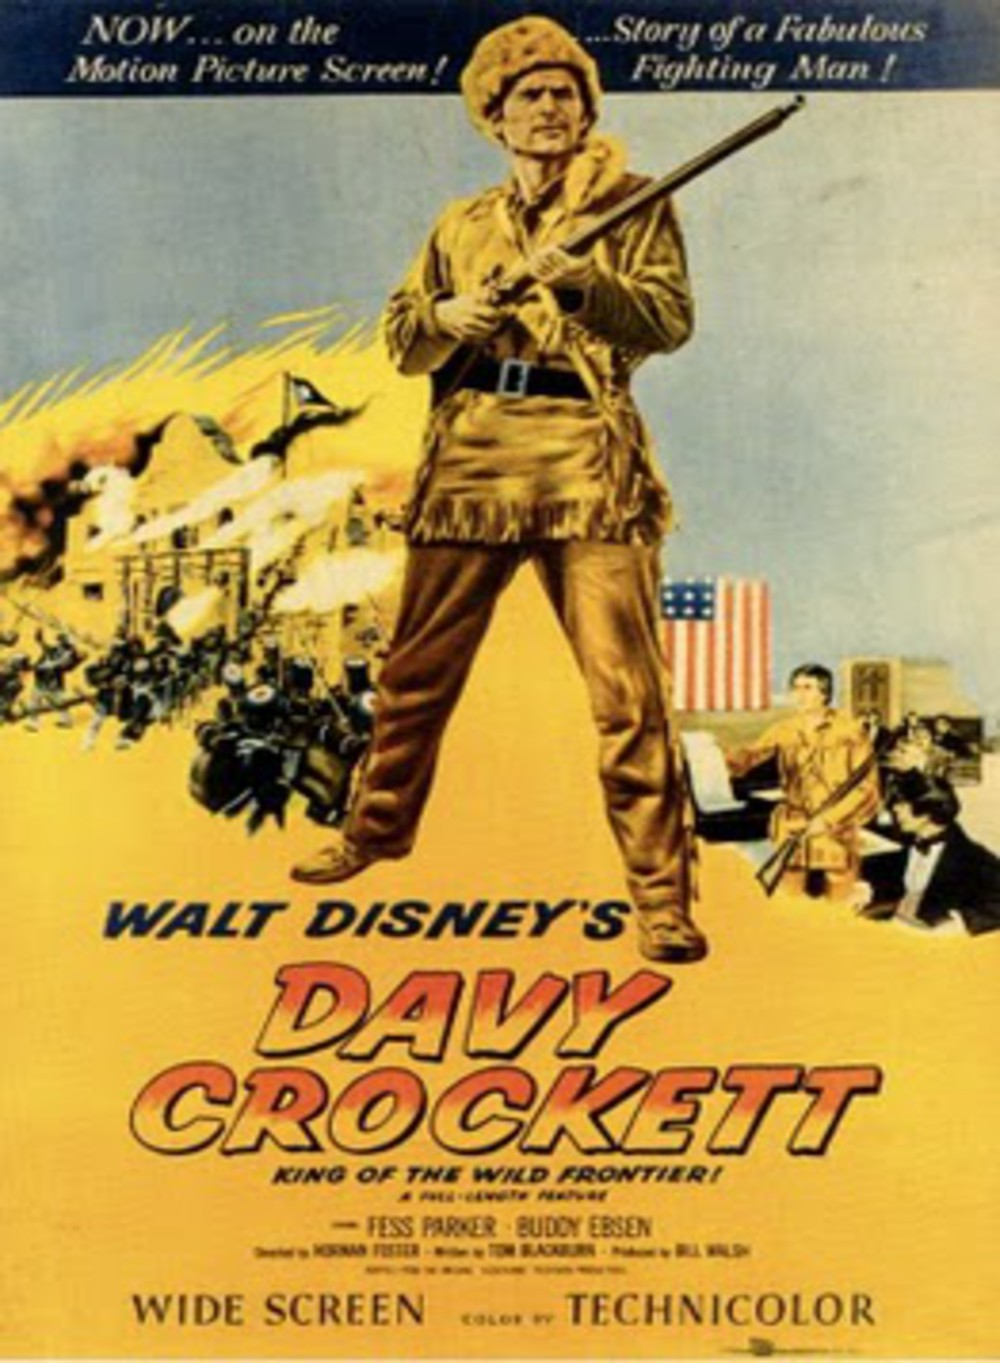 2004 crockett davy movie